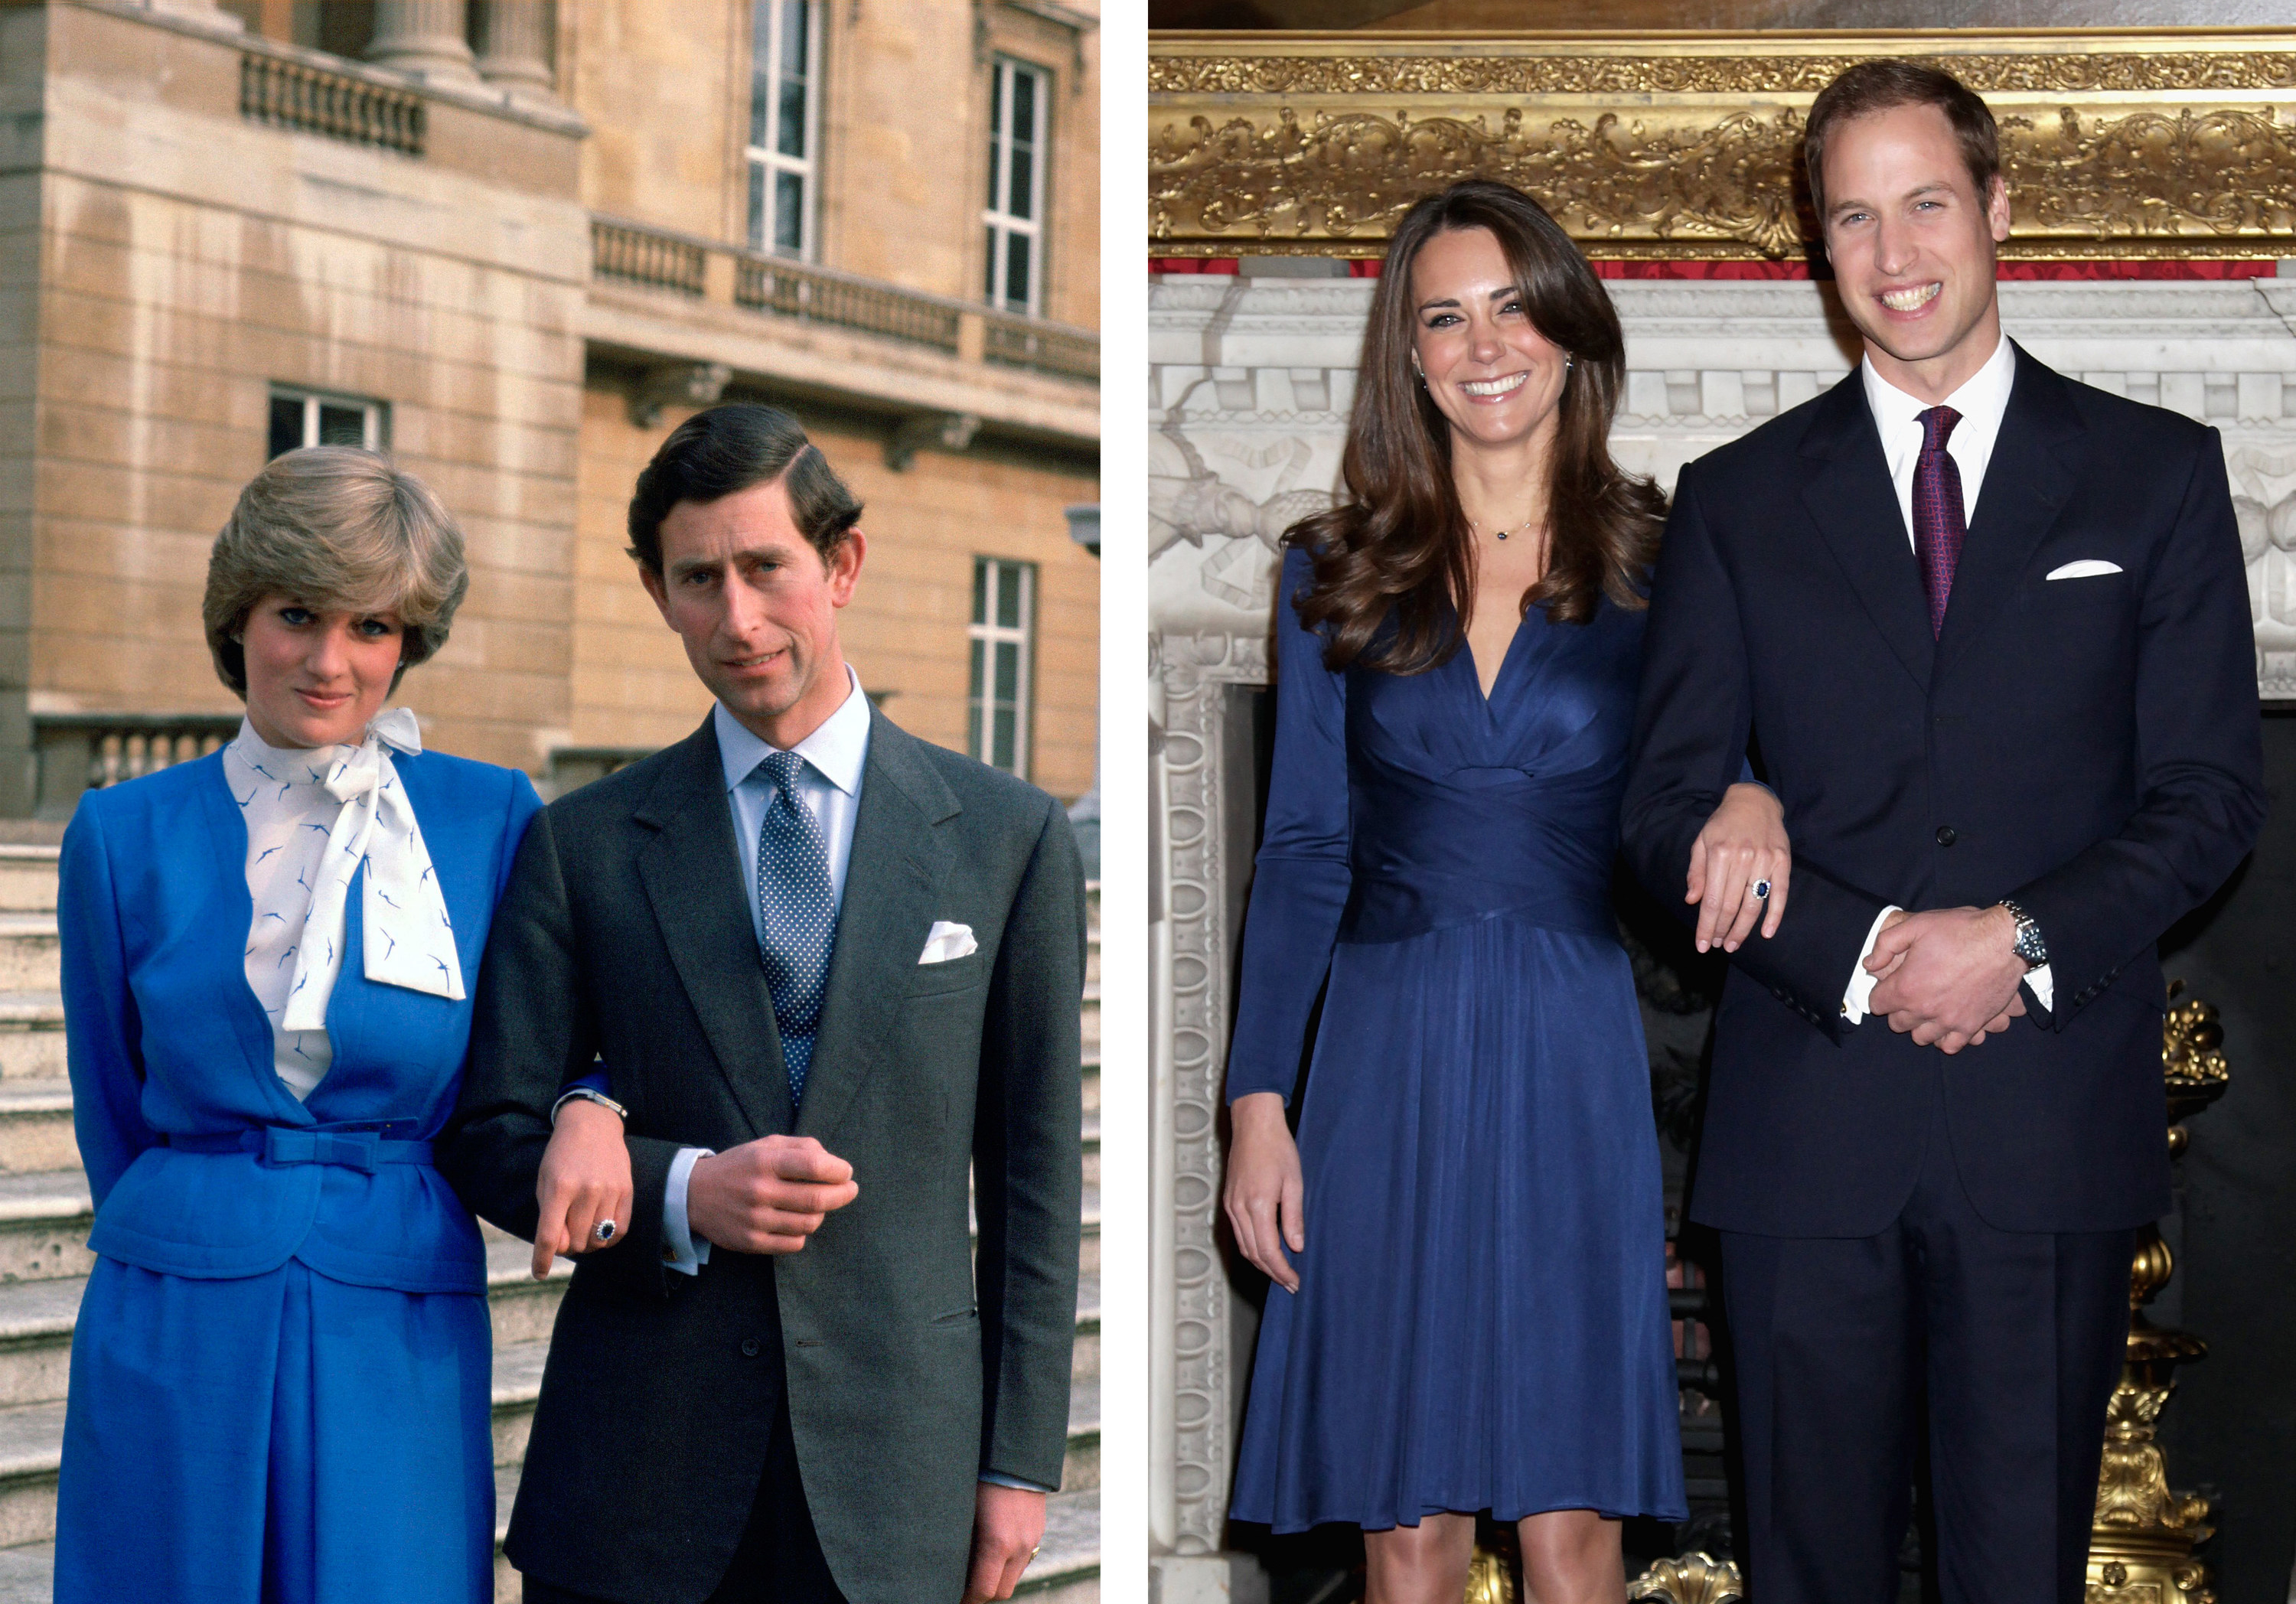 A photo of Charles and Diana during their engagement announcement next to William and Kate